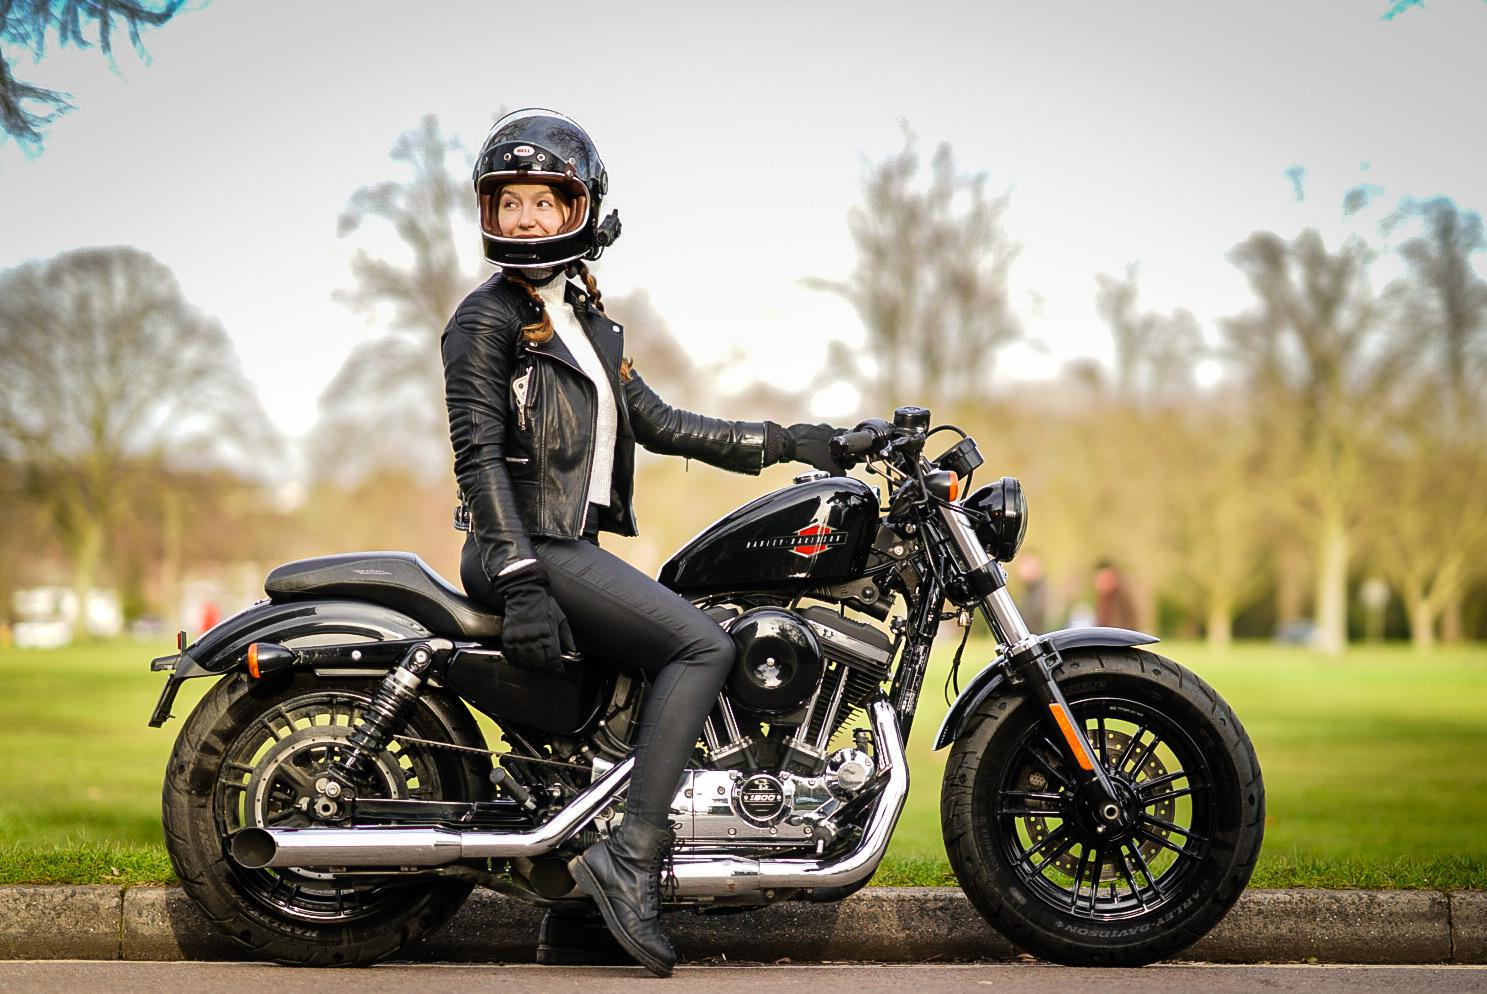 Ukbikergirl's – 2019 - Harley Davidson Sportster 1200 Forty Eight!- 31st May